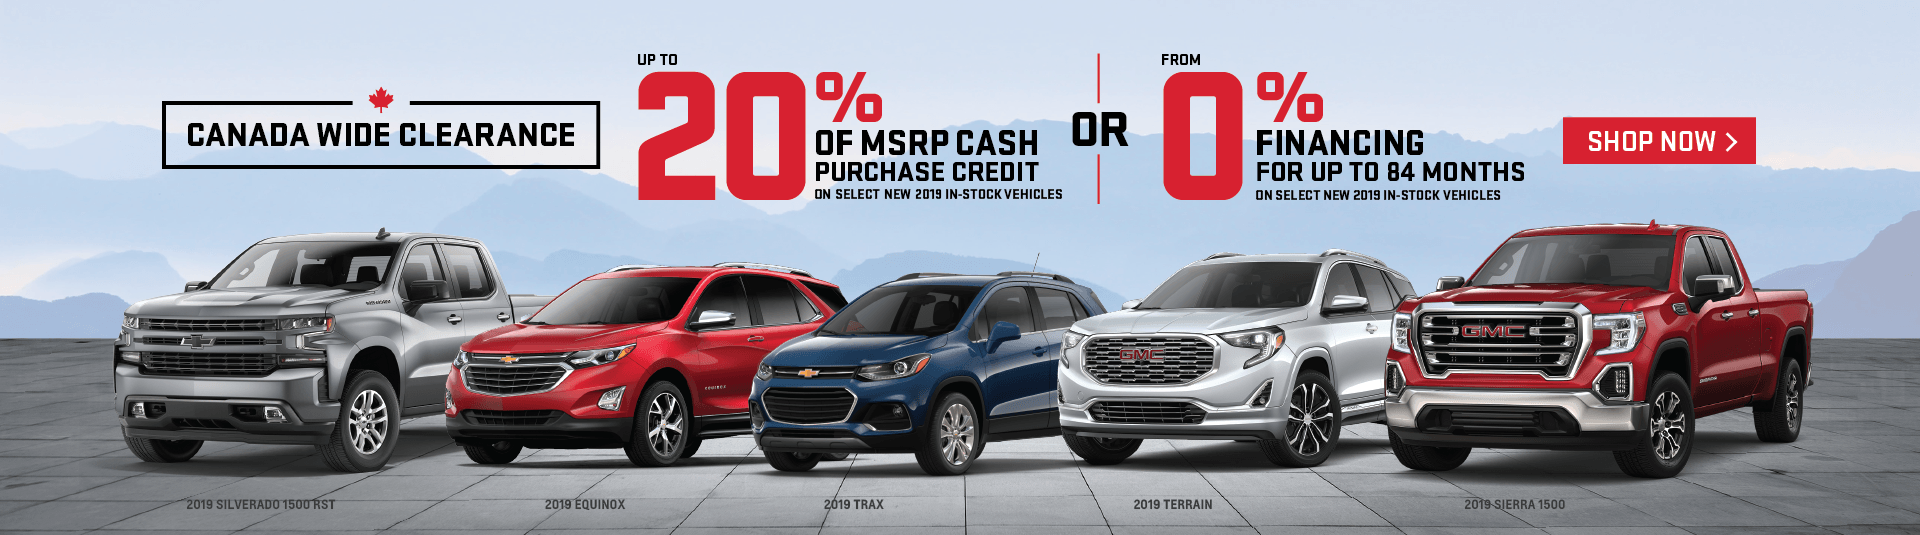 Humberview Chevrolet and GMC Clearance Event in Etobicoke